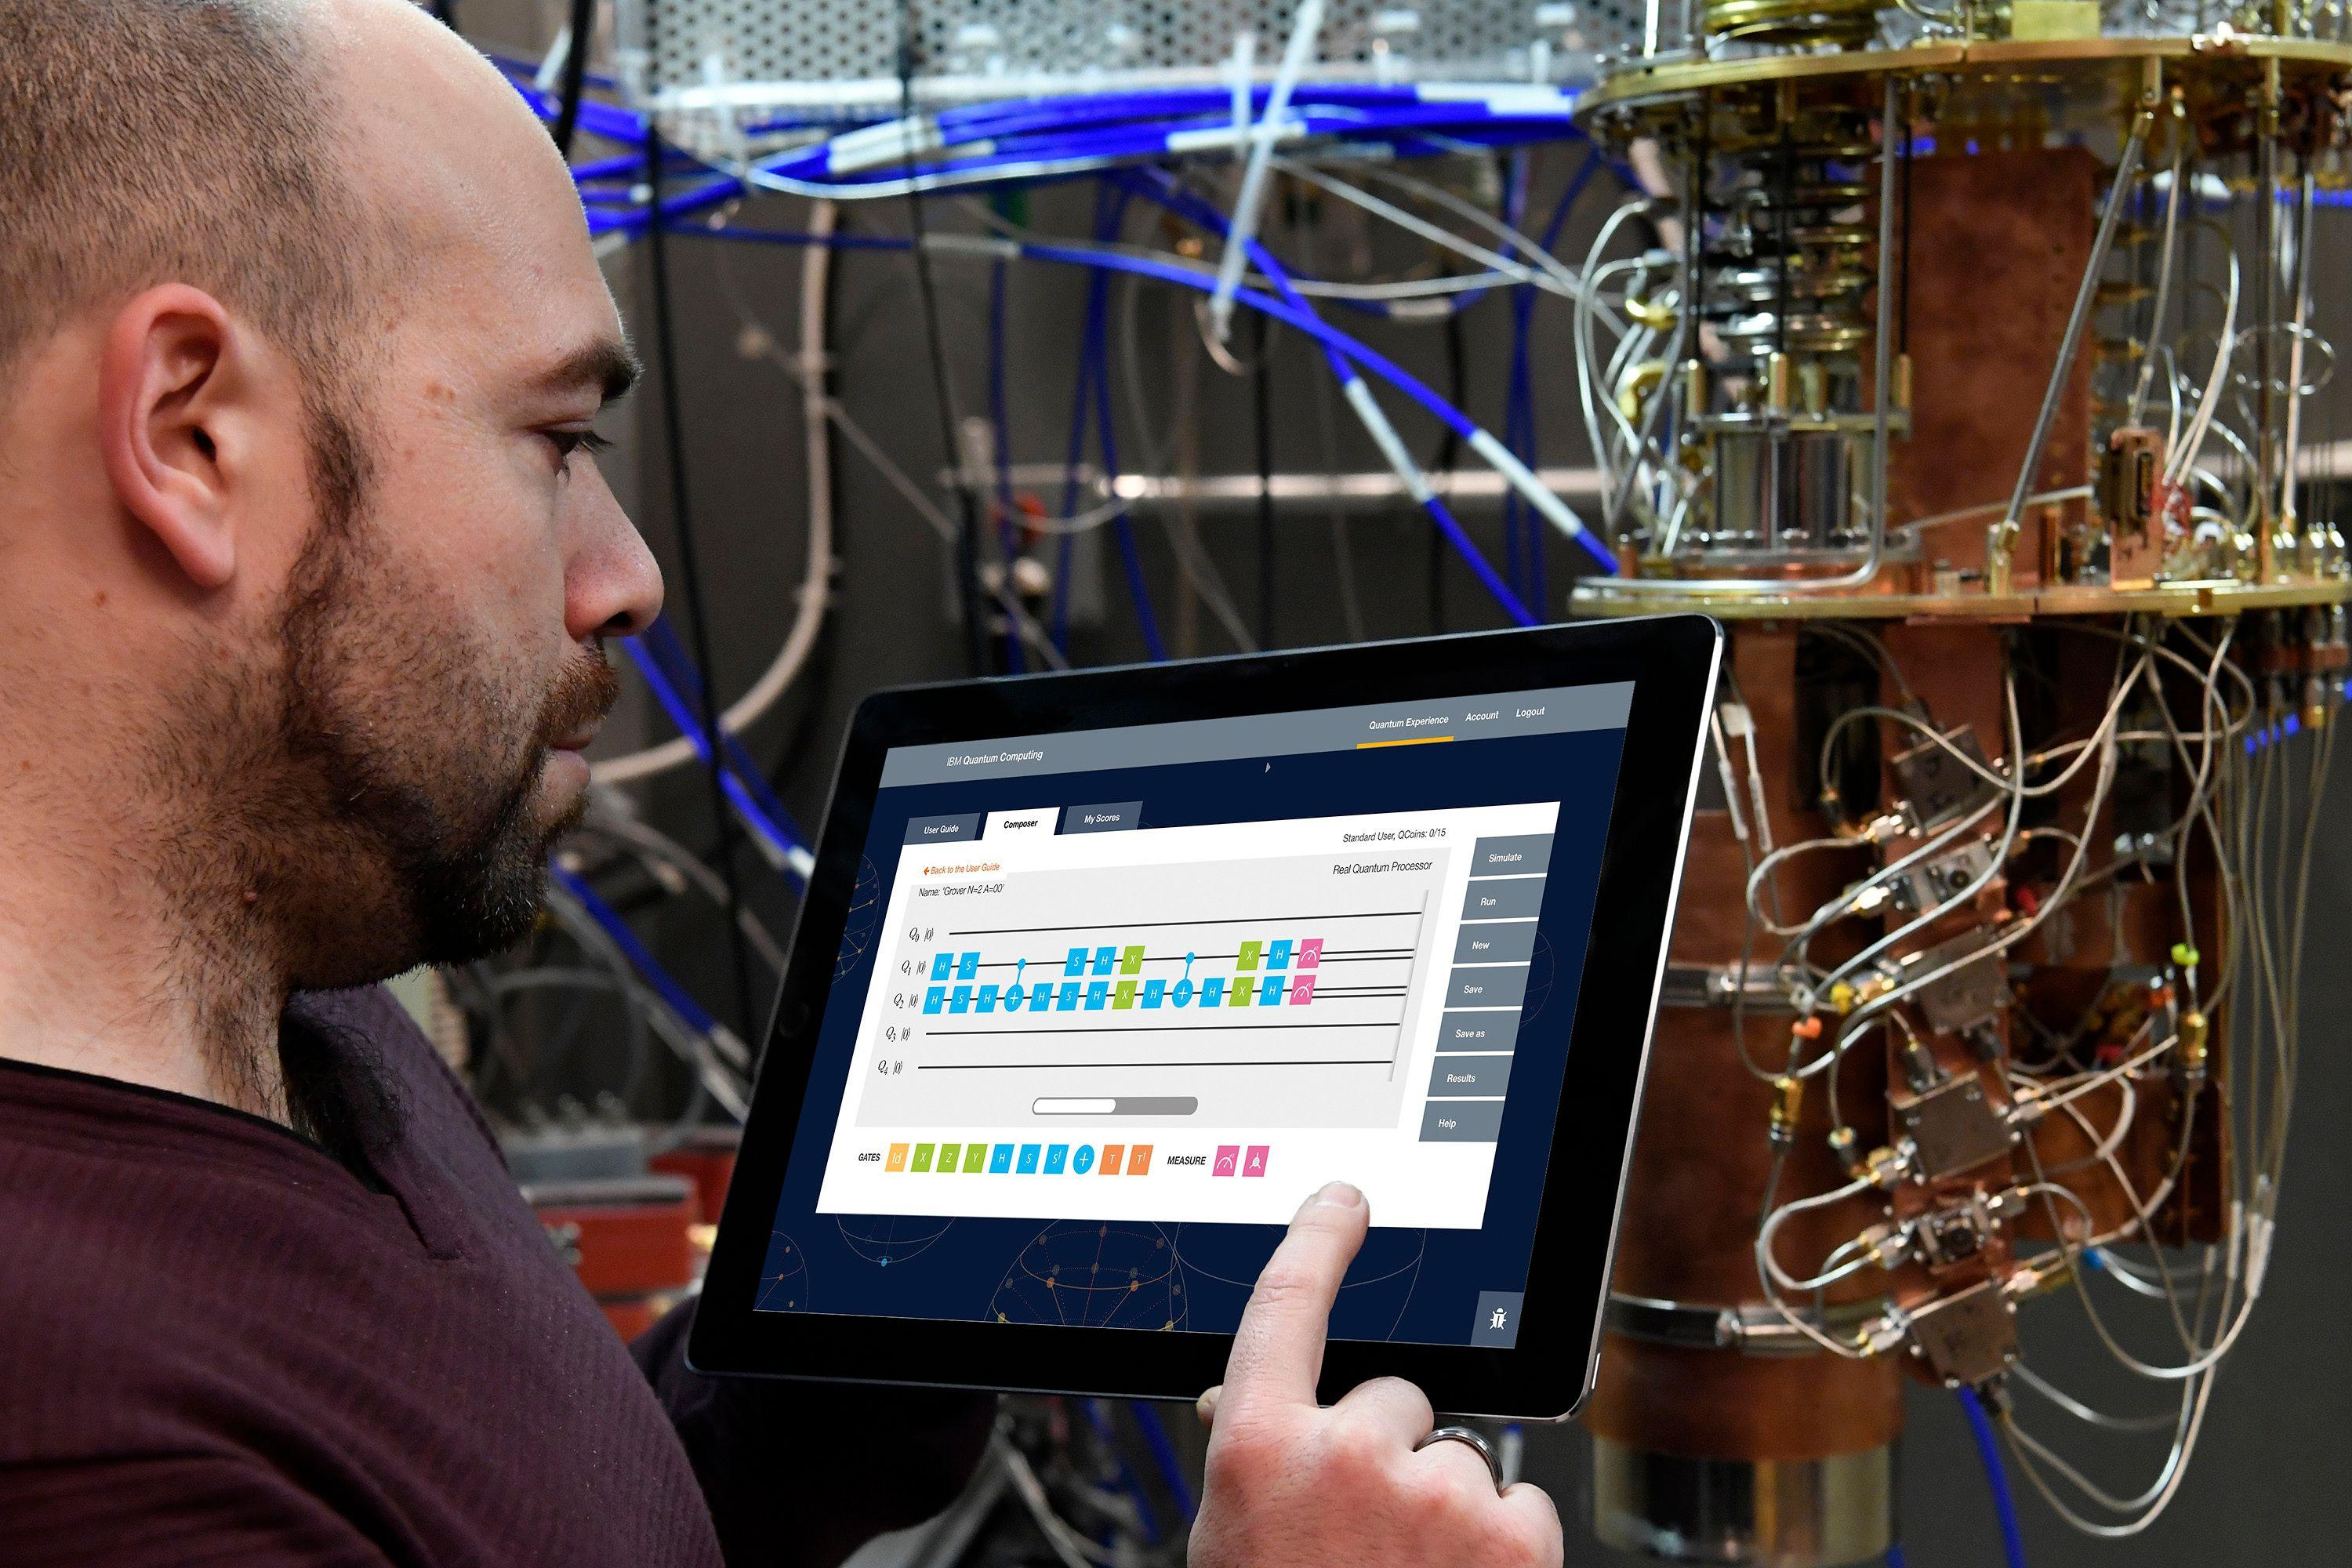 Research Scientist Antonio Córcoles uses the IBM Quantum Experience on a tablet